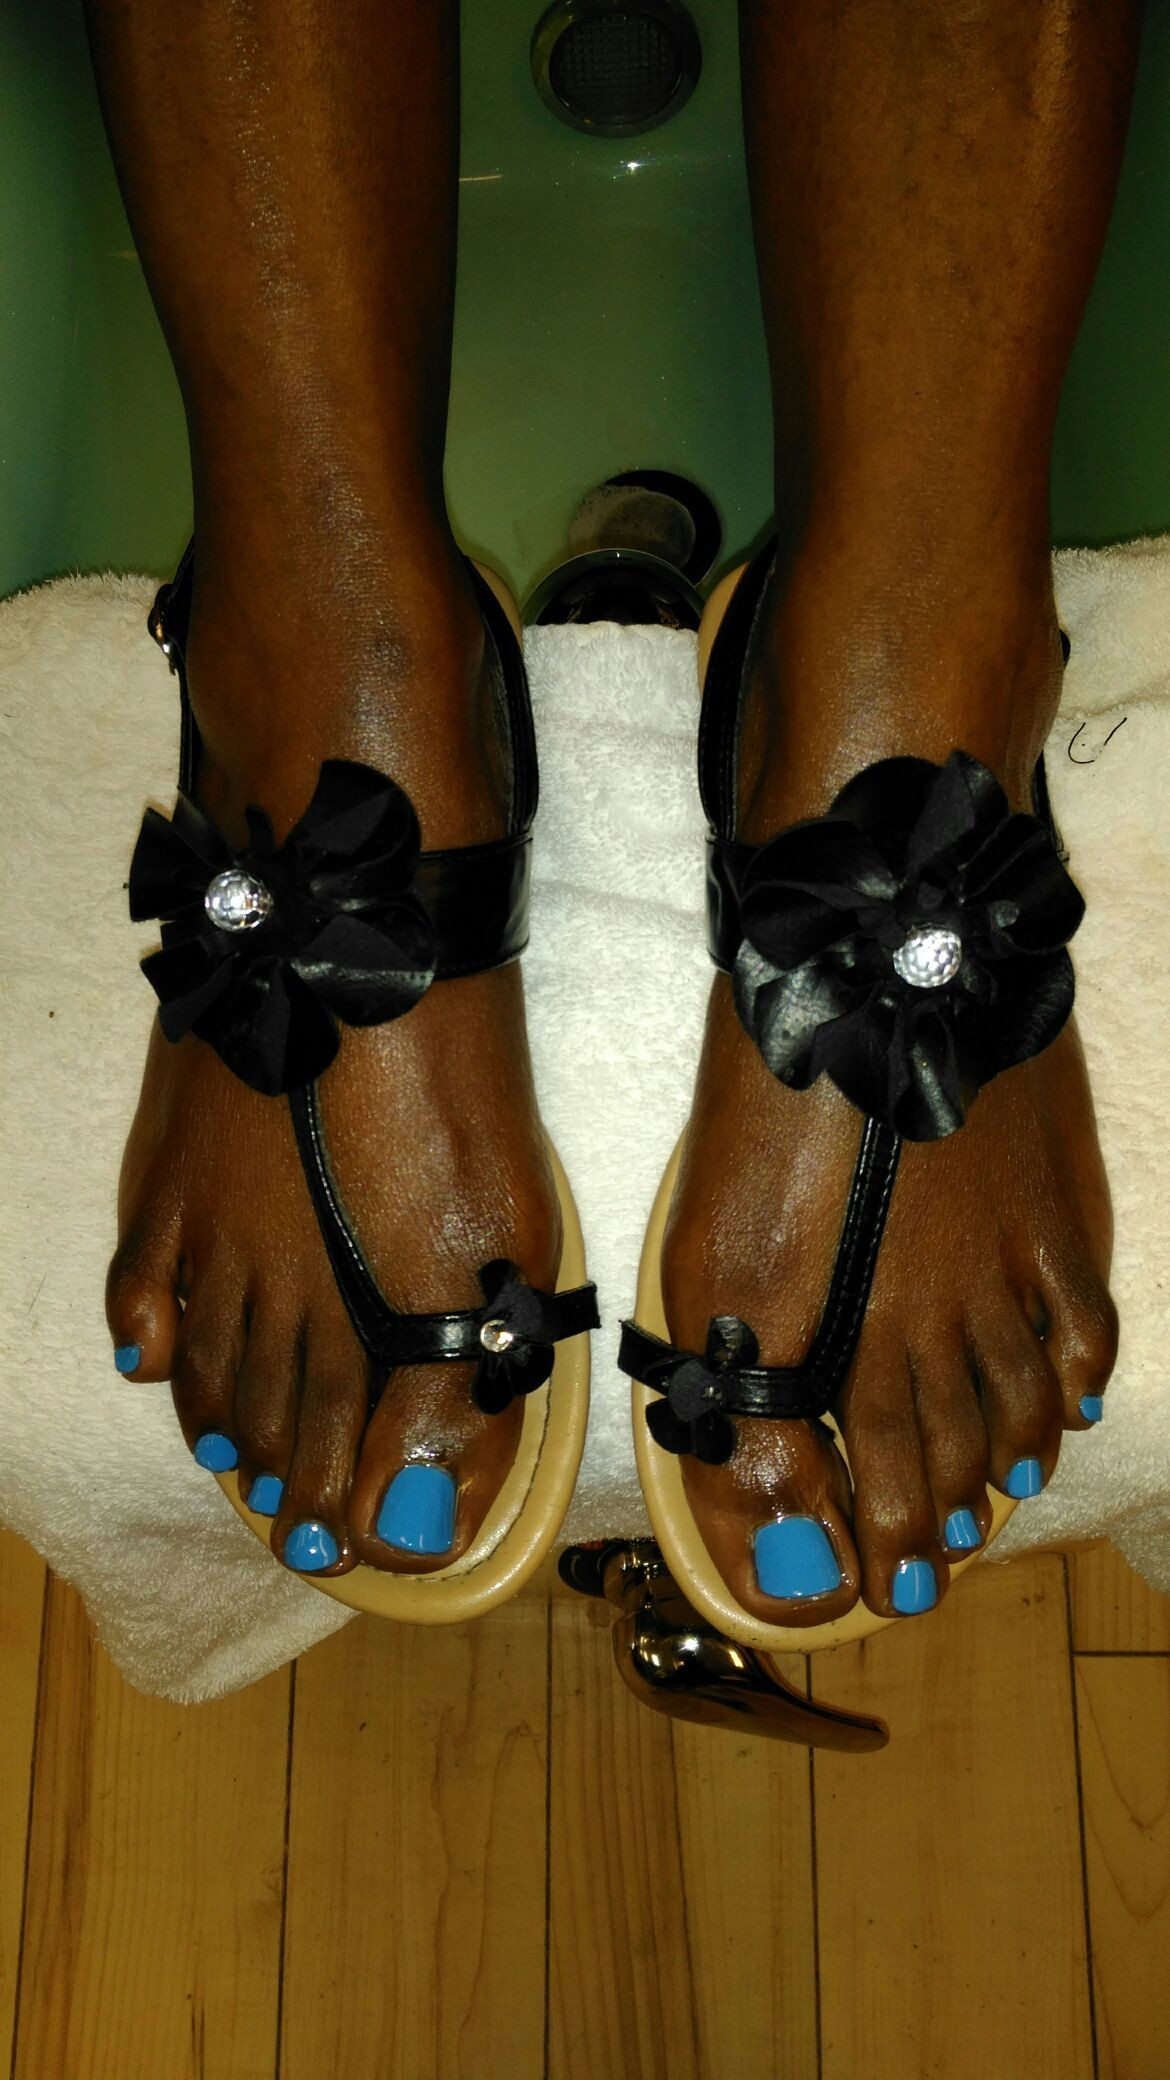 Thank u so much Ms. Anita for getting your #toes done with #ThaPolishQueen today! #ComeSeeMe #PrettyGurlsFeet #CleanBlackMasterNailTech #IDoNotRush #ITakeMyTime #UrMoneyWillBeWellSpent #UrToesMustBePerfectBeforeYouLeave #ComeExperienceMyHomemadeScrub #SpaologyNailSpa #ISupportBlackOwnedBusinesses Spaology Nail Spa & More 3000 Kavanaugh Blvd, Ste. C LR, AR 72205 To book your appointment email me @ PrettyGurlsFeet@gmail.com or call me at the salon @ 501.265.0303 or to book directly and purchase your service... Go to my website @ me on IG: @ms_beautiful_feet #ImWaitingOnYou